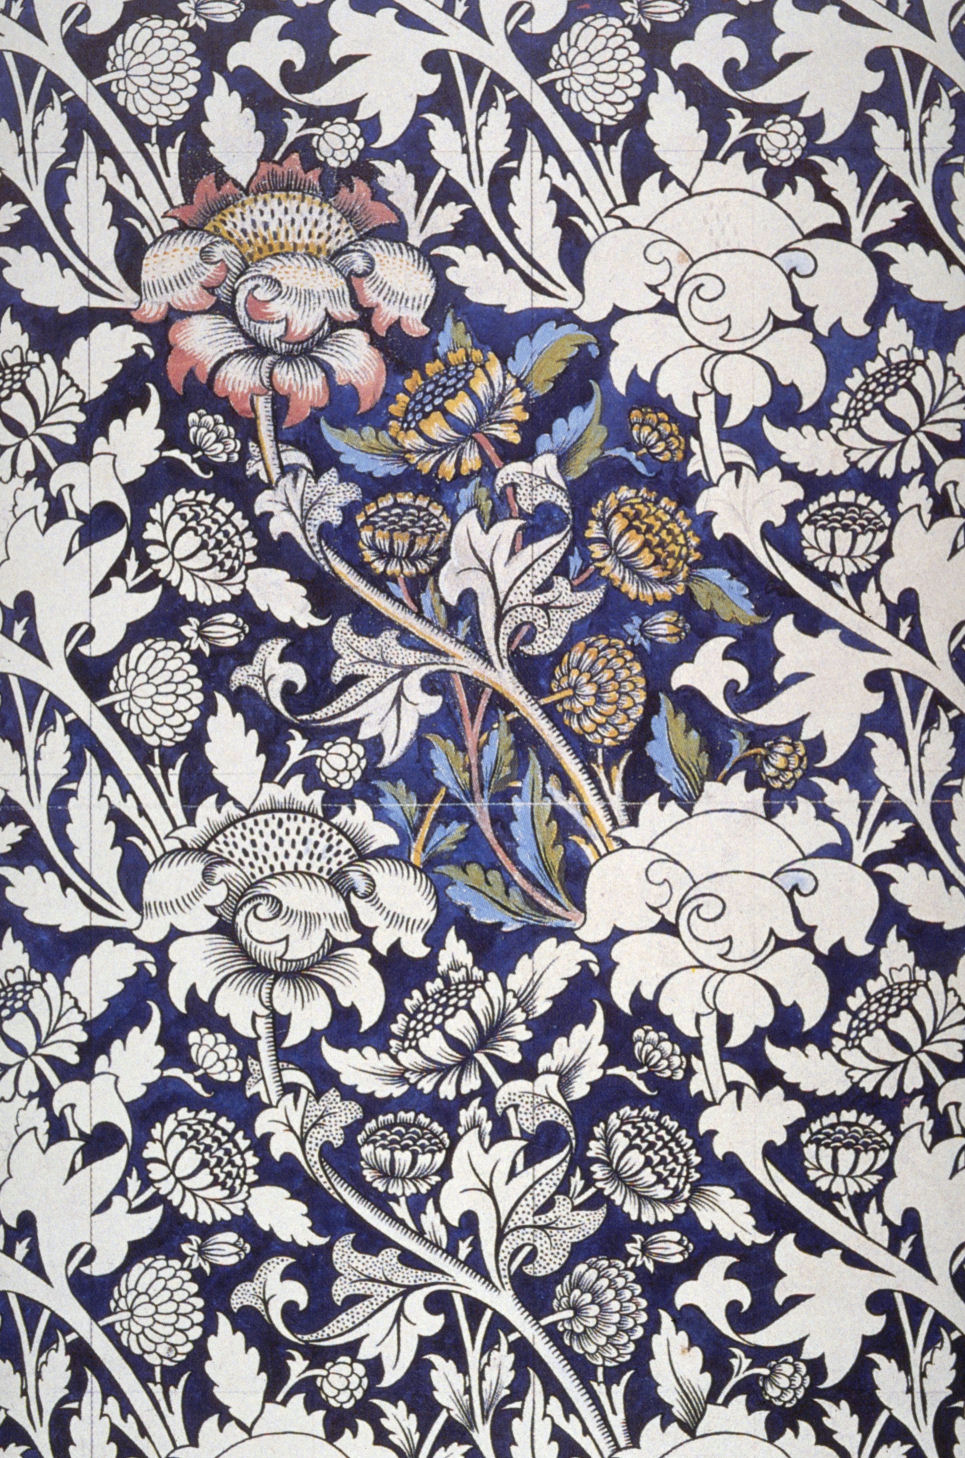 William Morris Textile Design